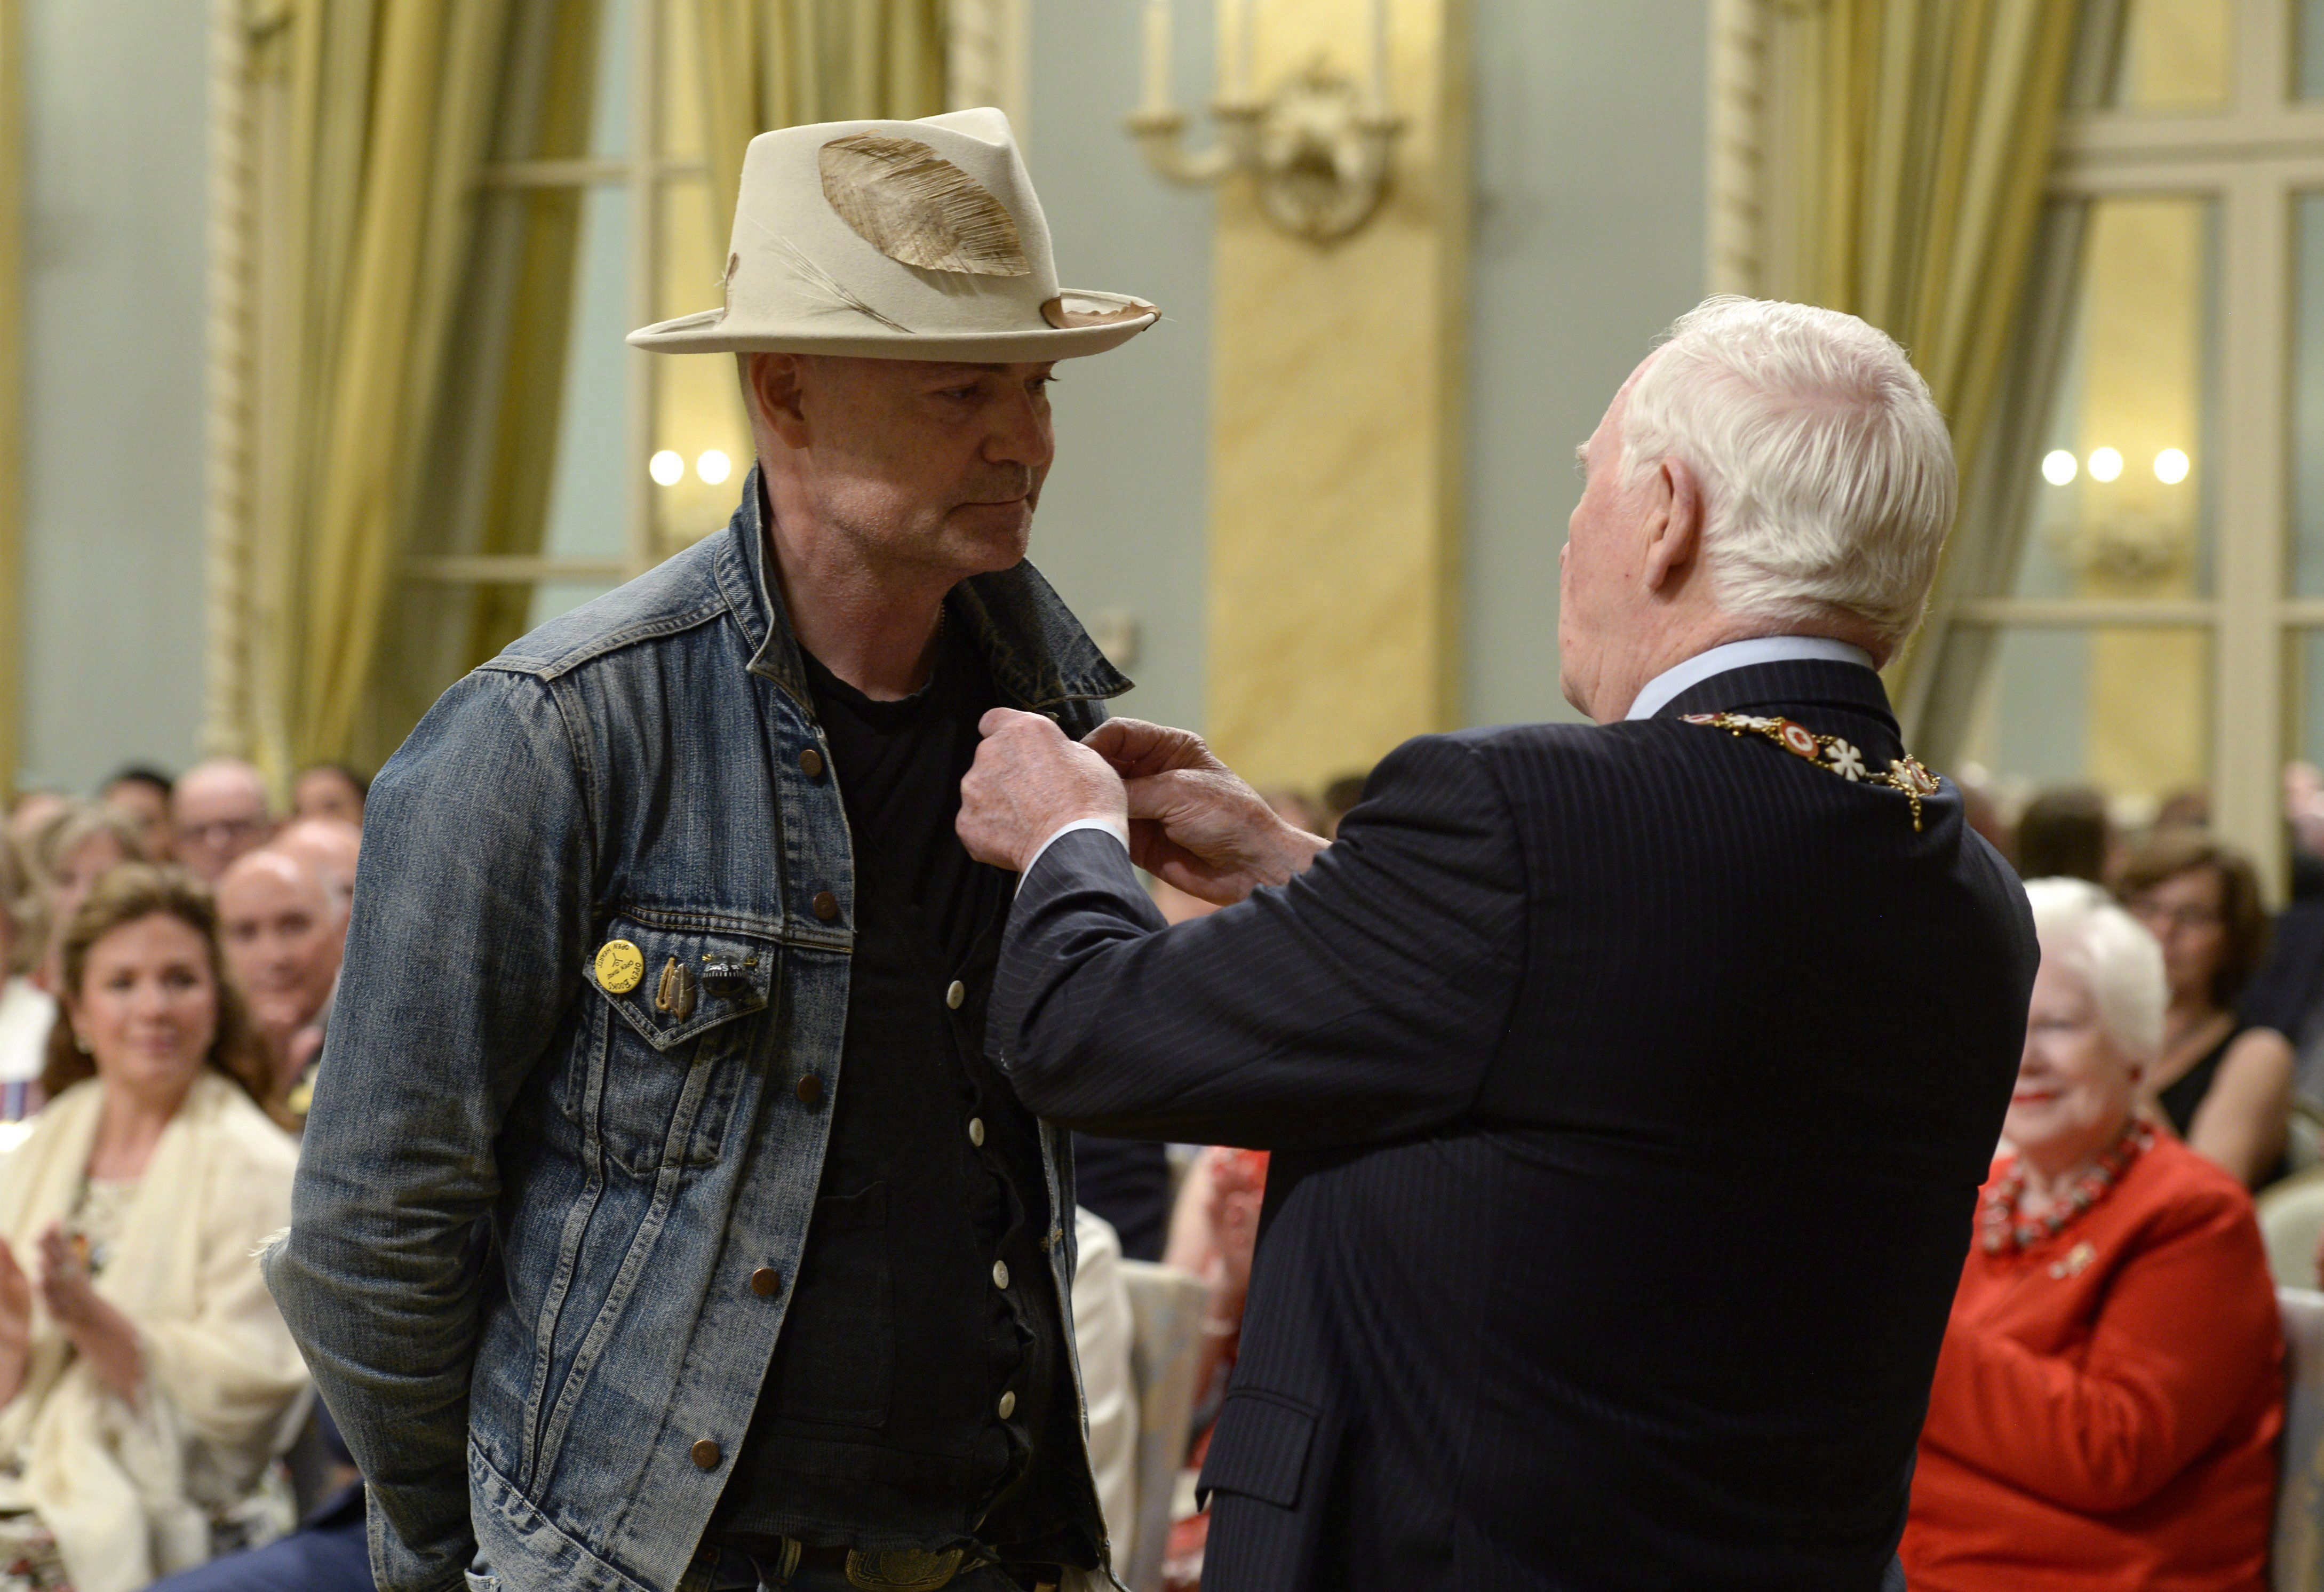 Gord Downie receiving the Order of Canada from Governor General David Johnston in June 2017.